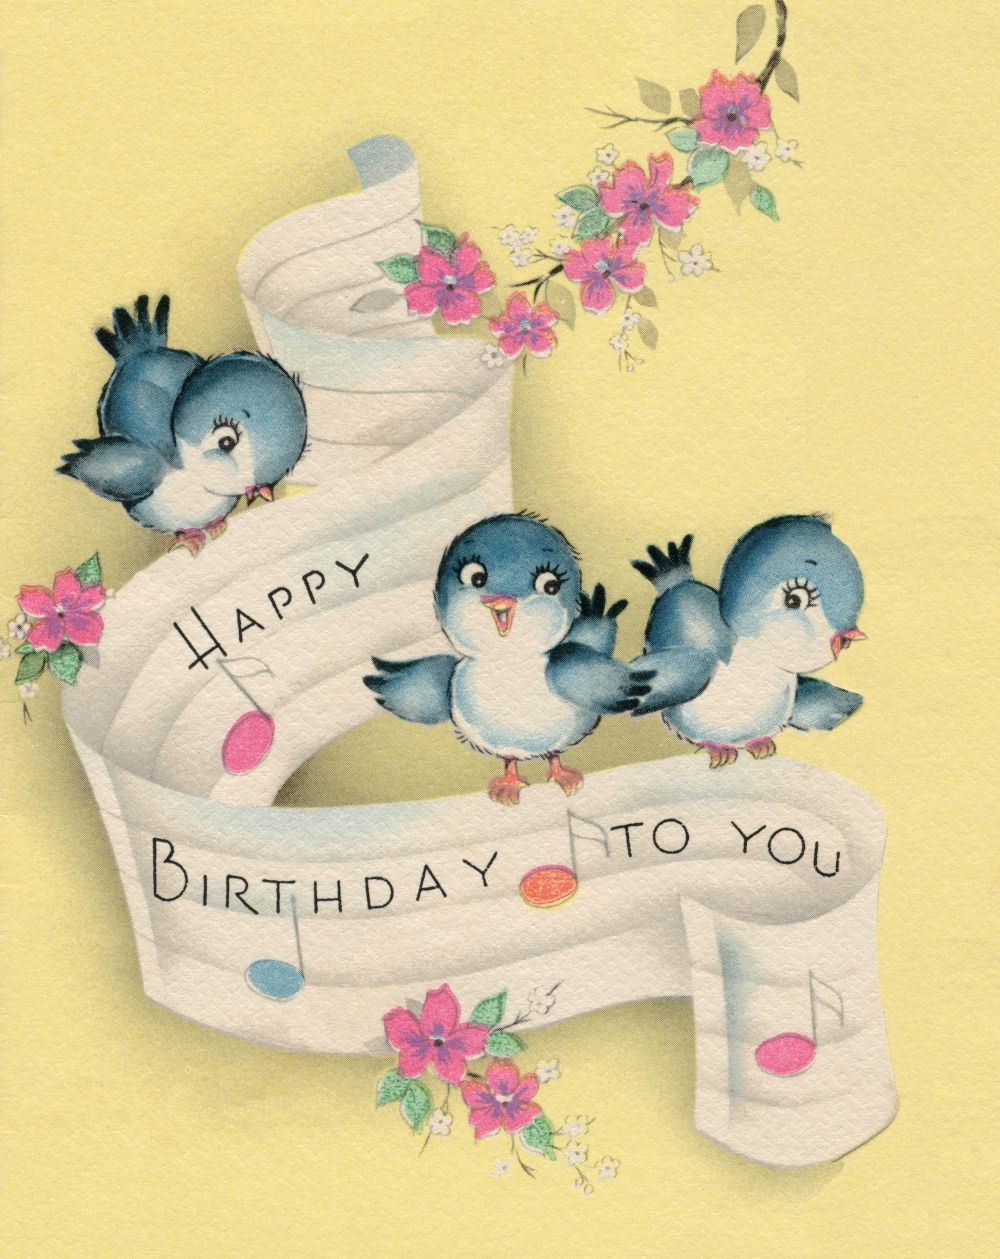 Happy birthday bluebirds vintage card birdies of happiness happy birthday bluebirds vintage card bookmarktalkfo Image collections